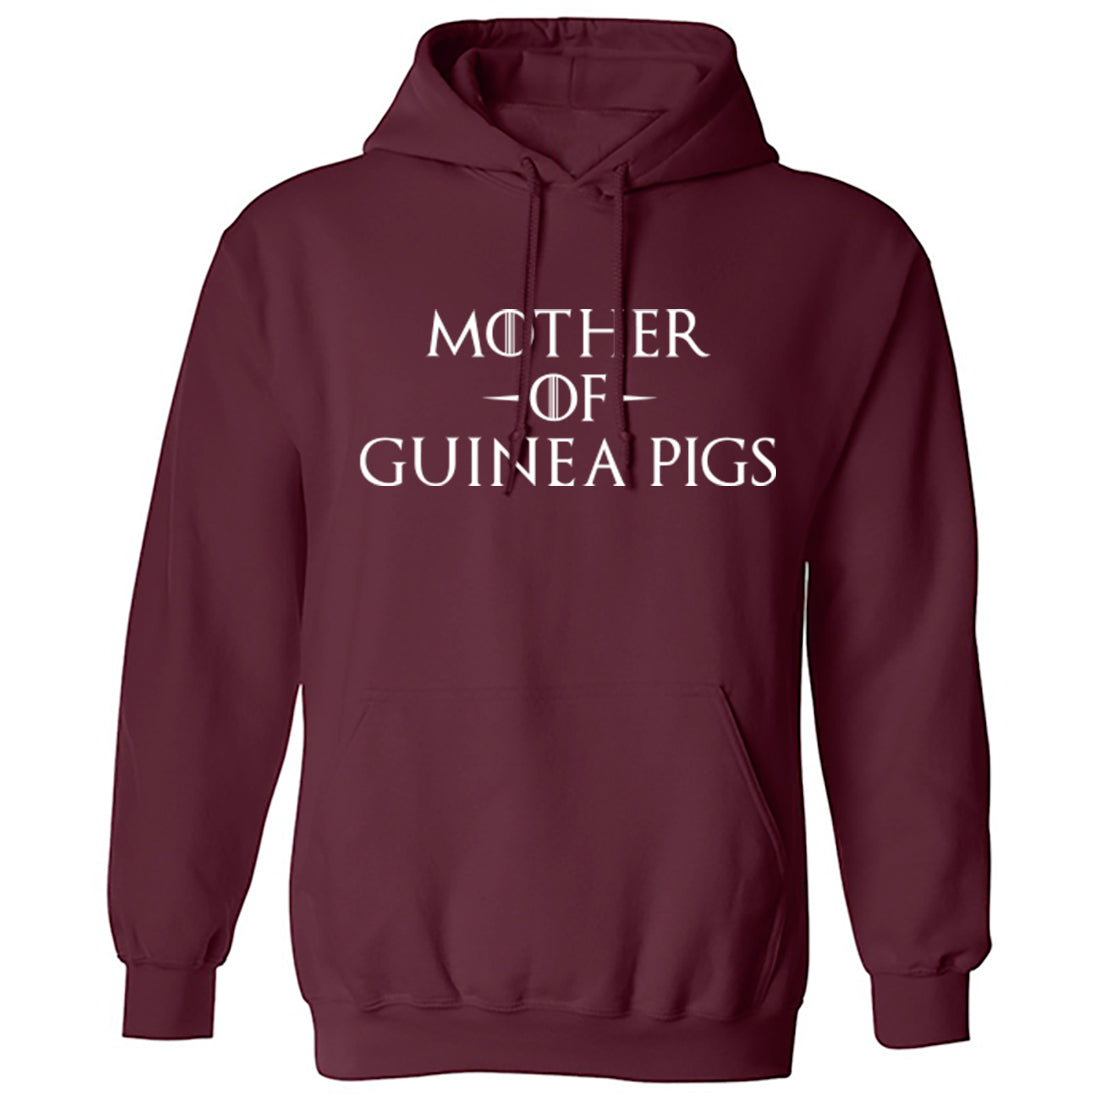 Mother Of Guinea Pigs Unisex Hoodie K1188 - Illustrated Identity Ltd.